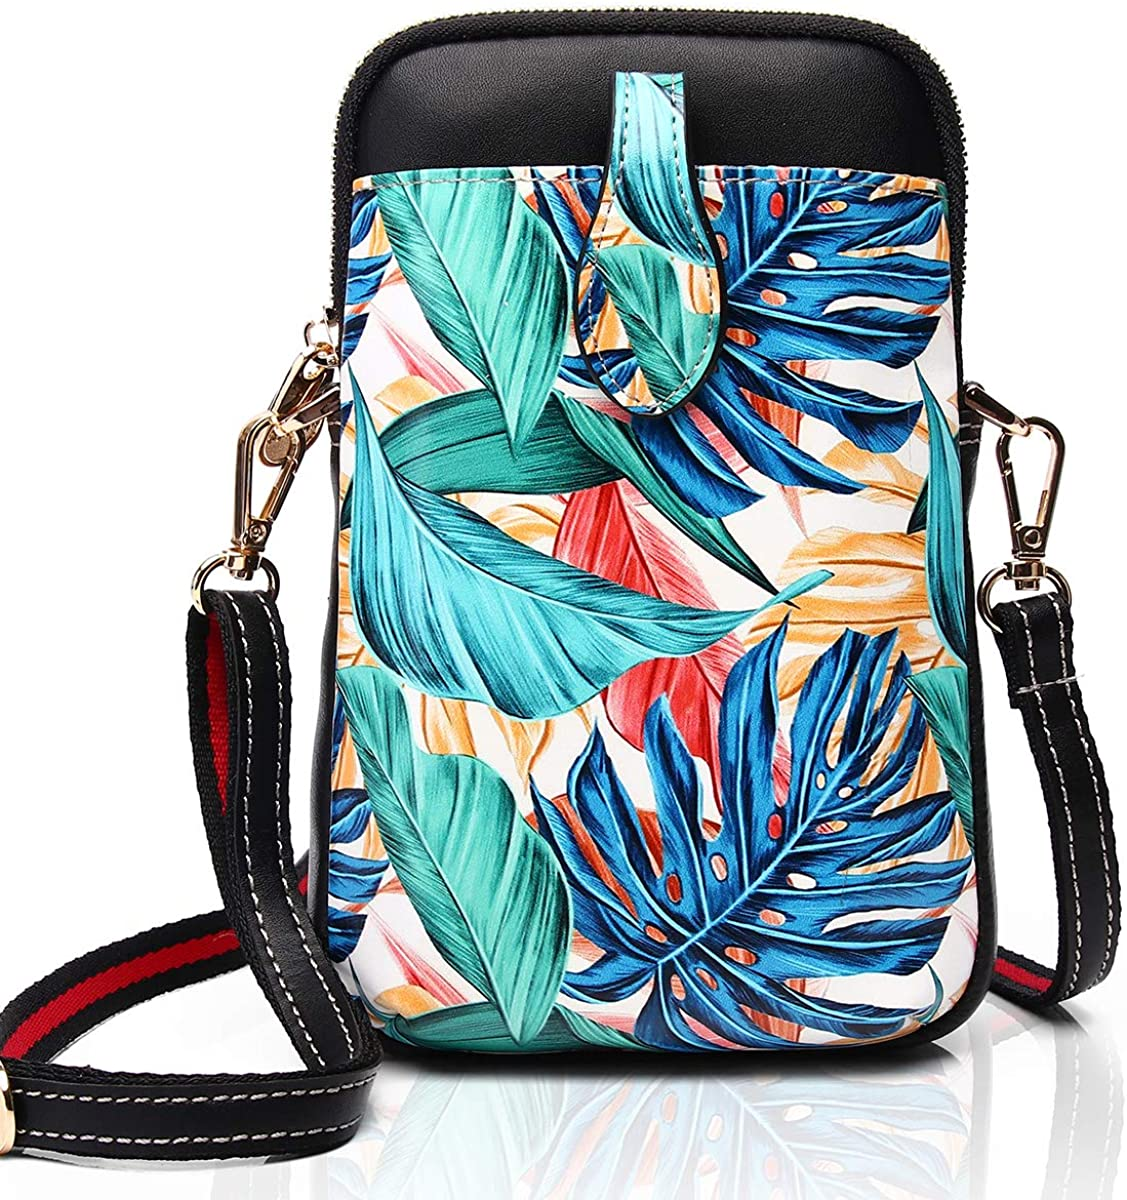 APHISON Small Crossbody Bag Women Cell Phone Small Shoulder Bags Microfiber leather Wallet